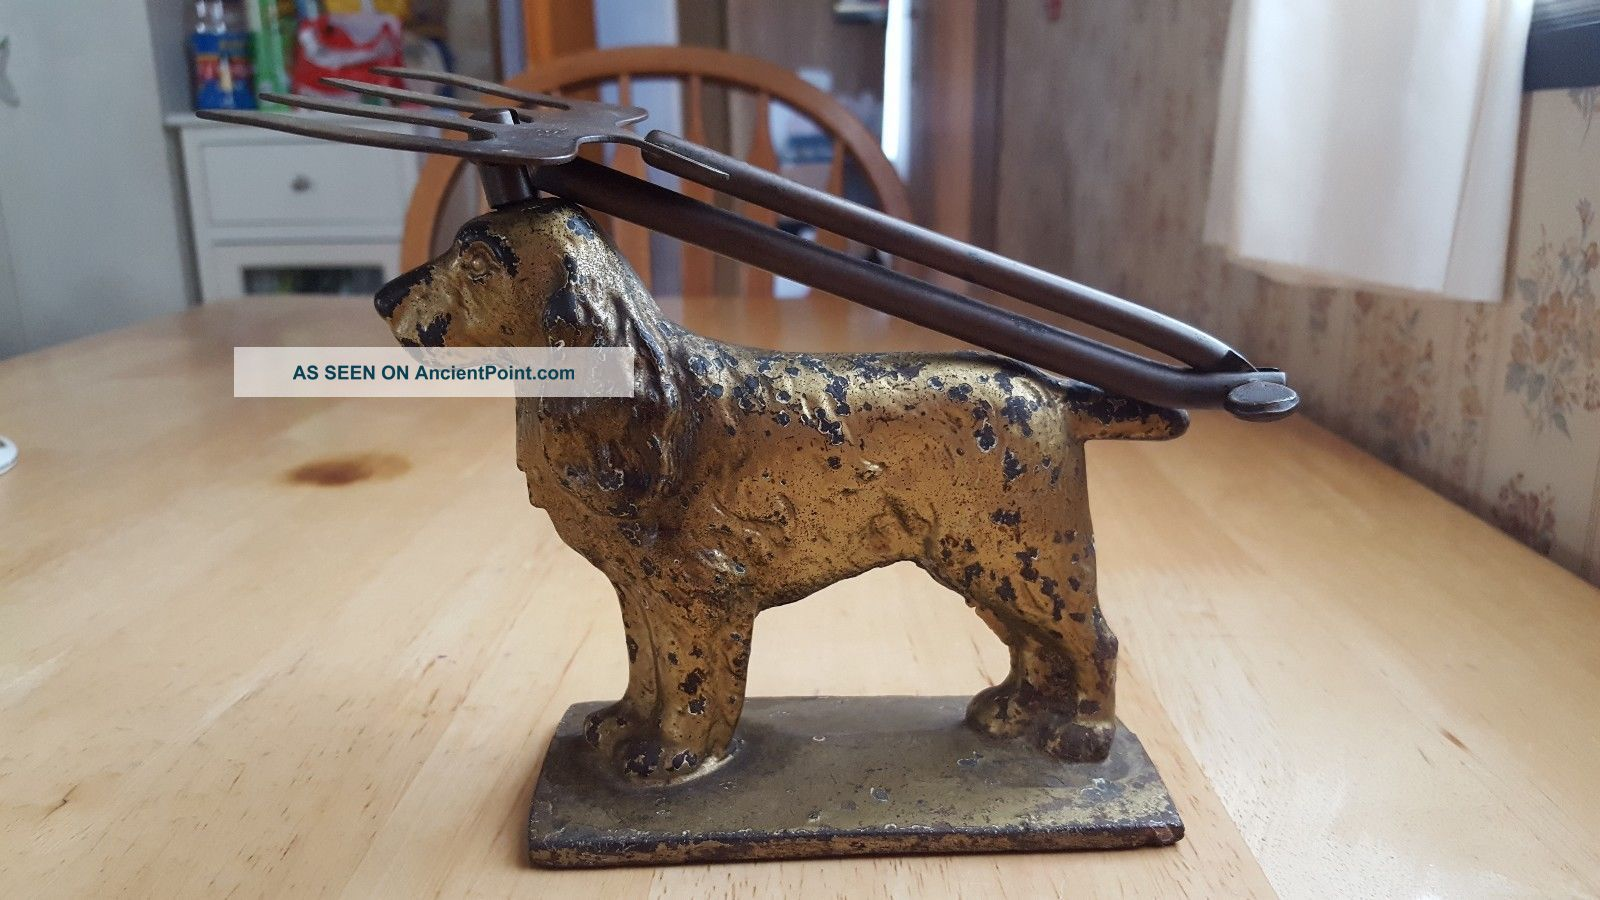 Antique Cast Iron Cocker Spaniel Y.  S.  C.  Toastee Articulated Fireplace Toaster Toasters photo